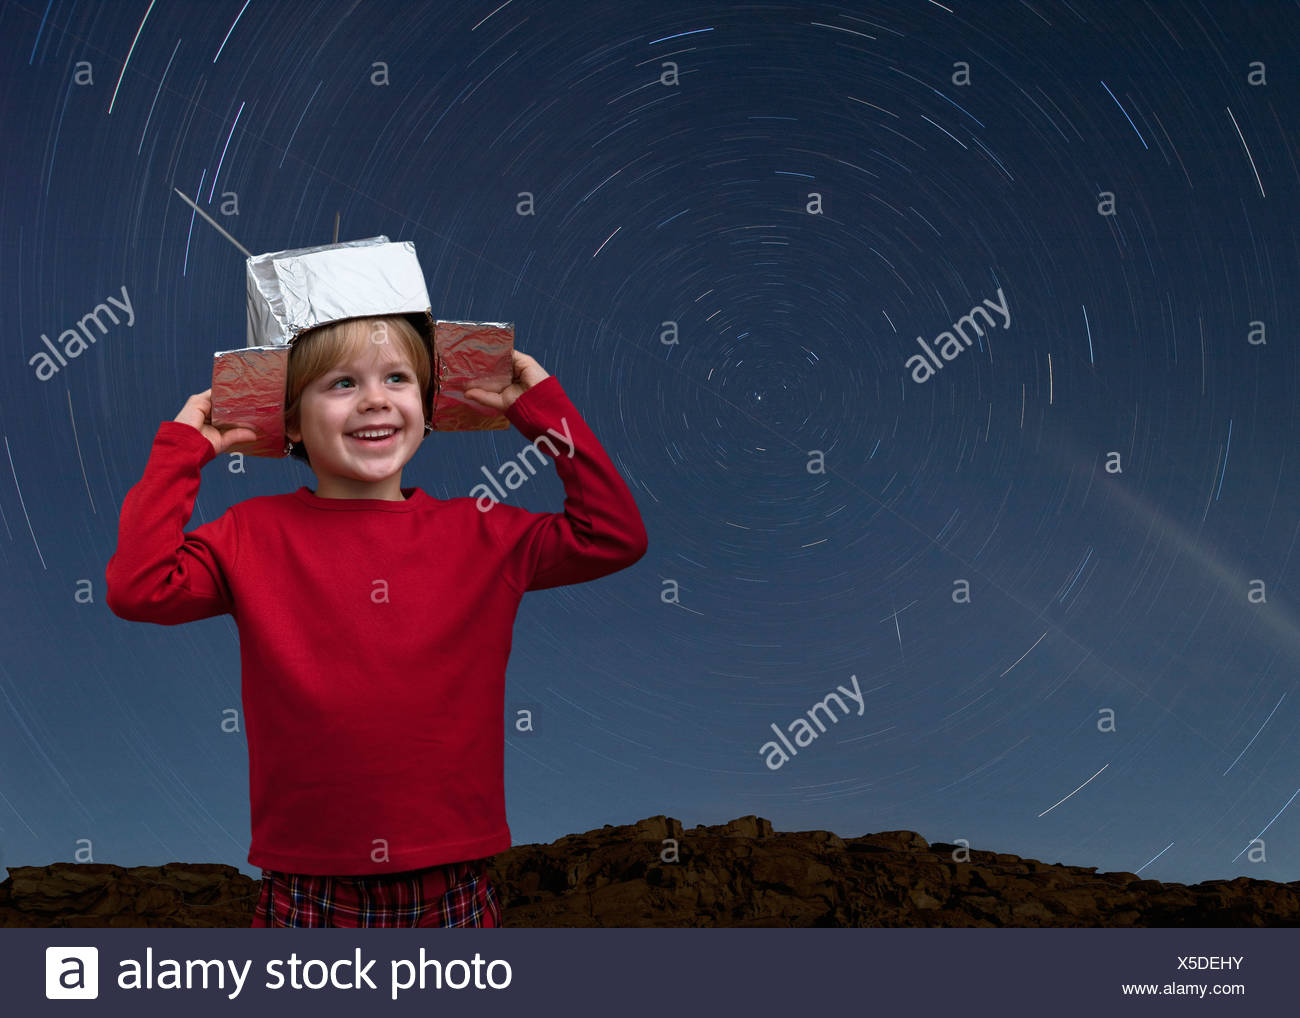 Croatia,Boy with space hat and star trail in the sky - Stock Image